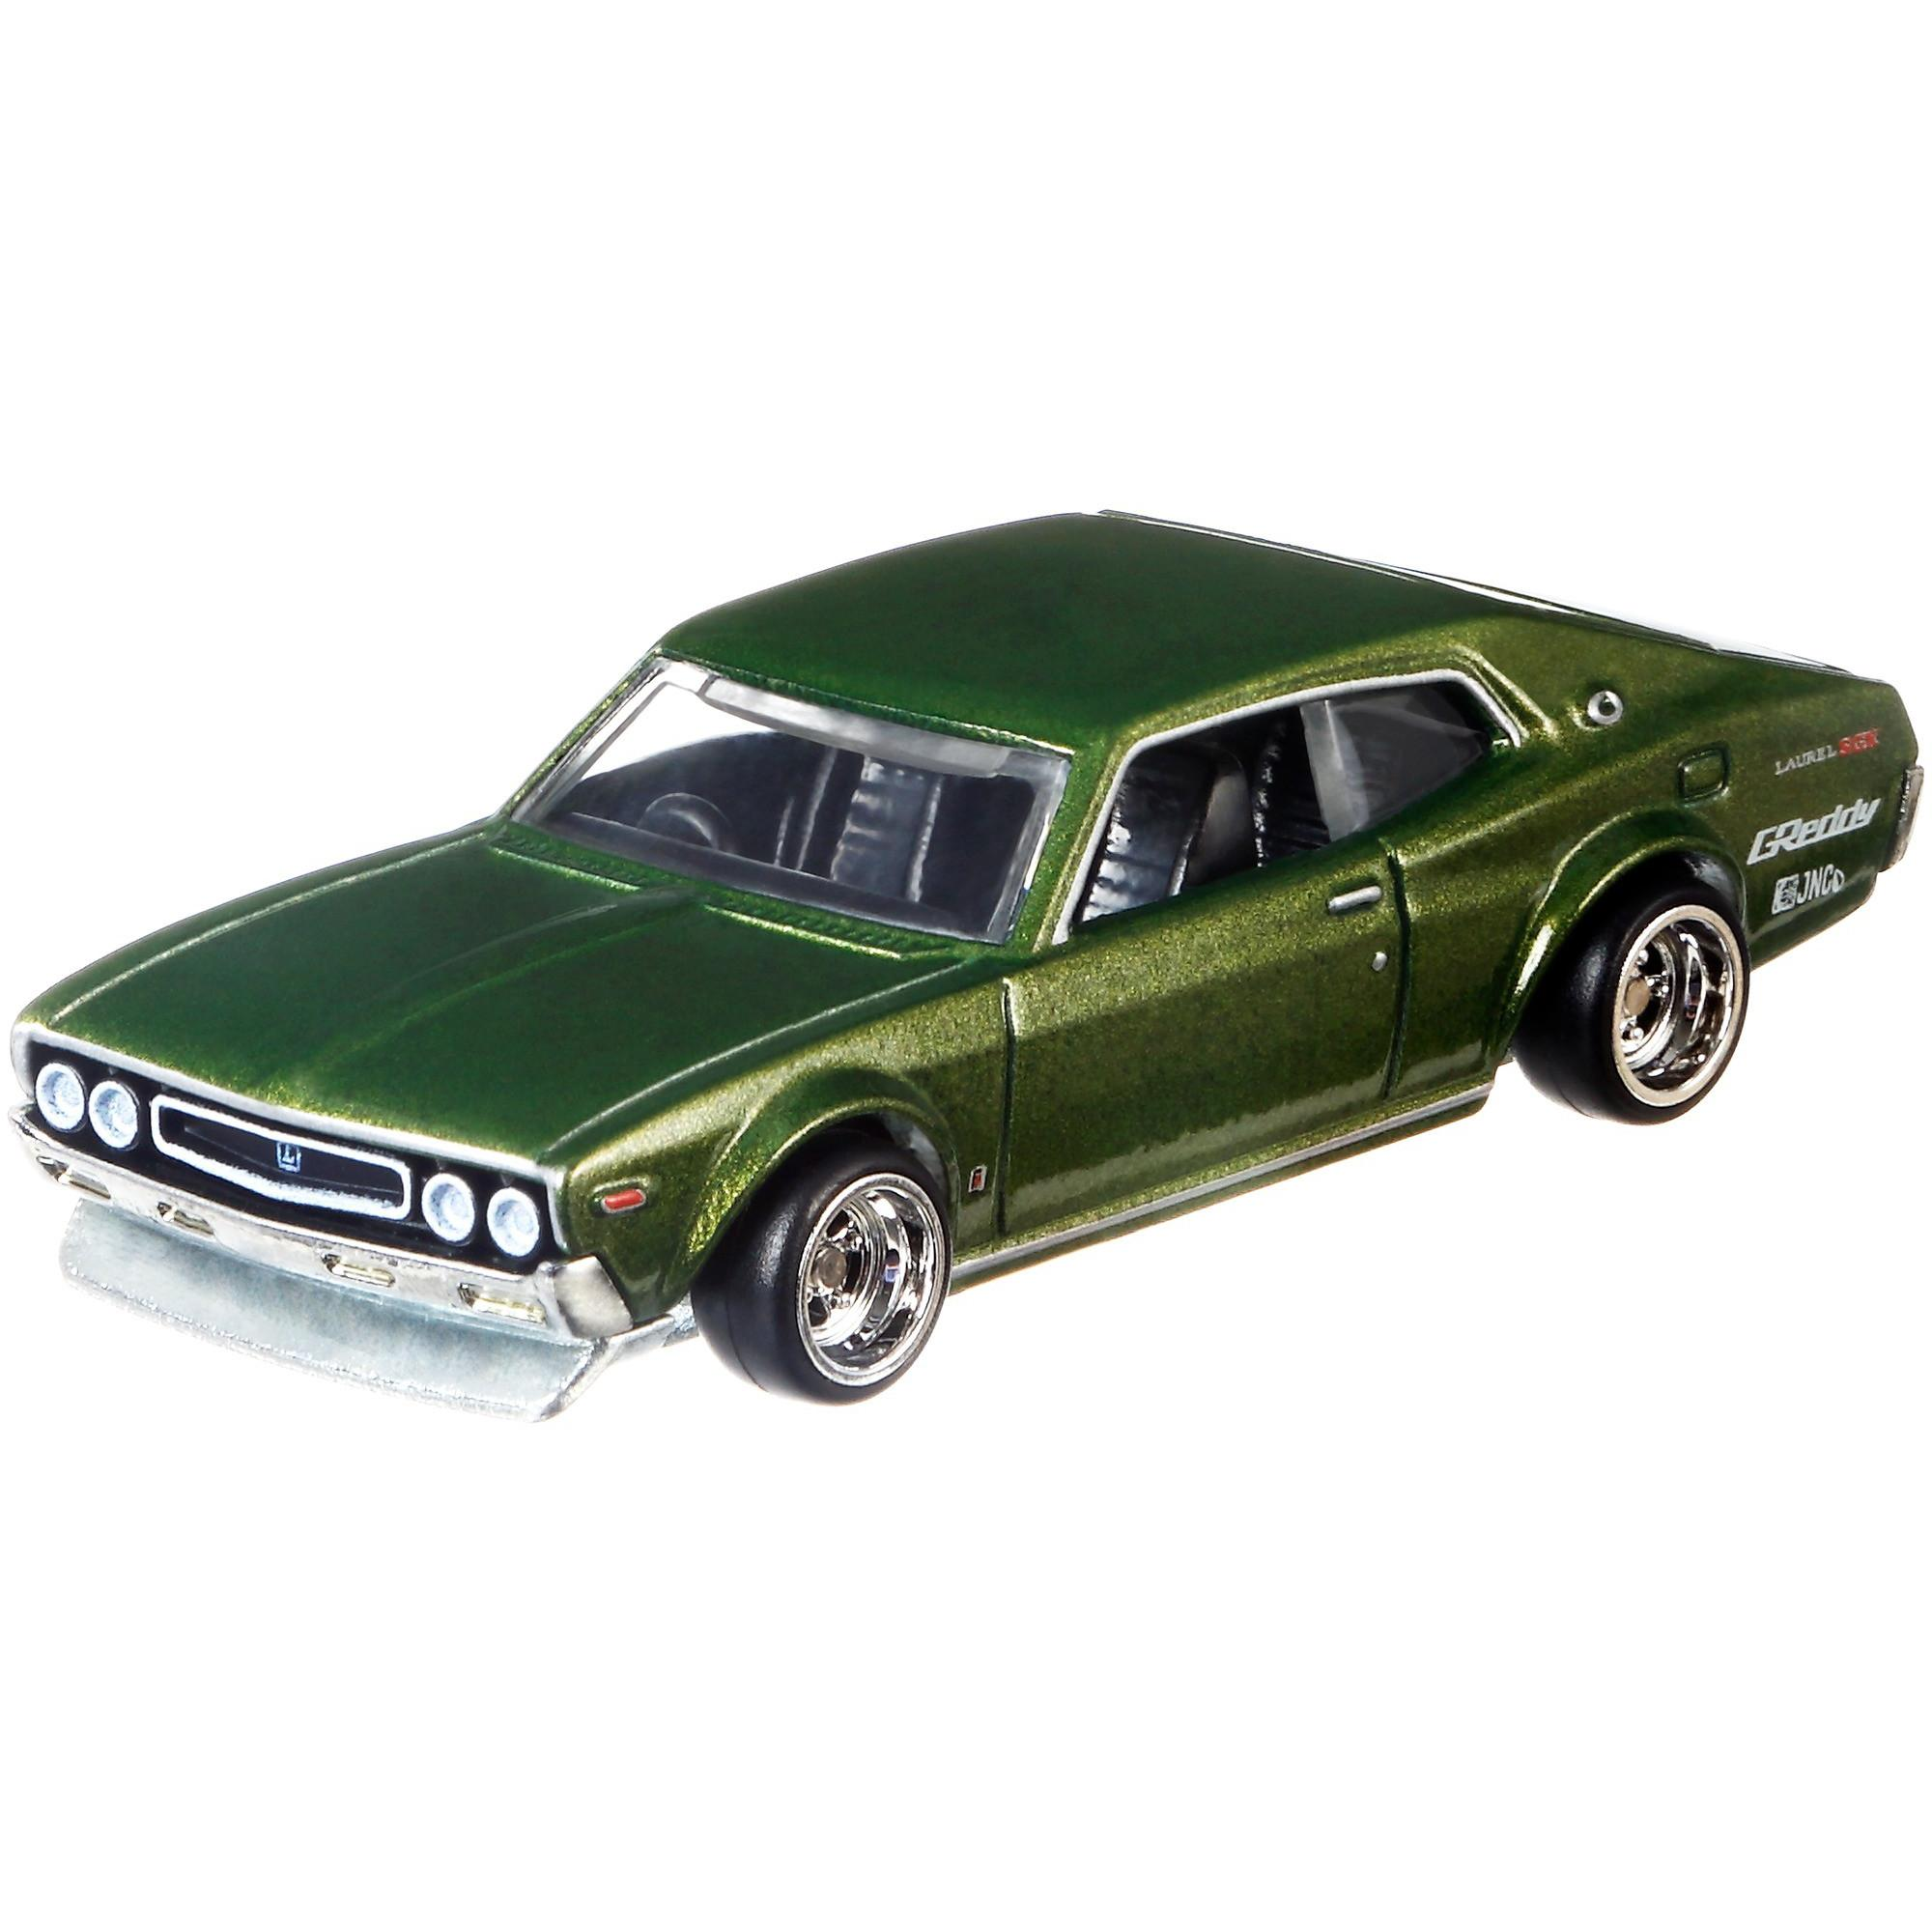 Hot Wheels Car Culture 1:64 Scale Vehicle (Styles May Vary)